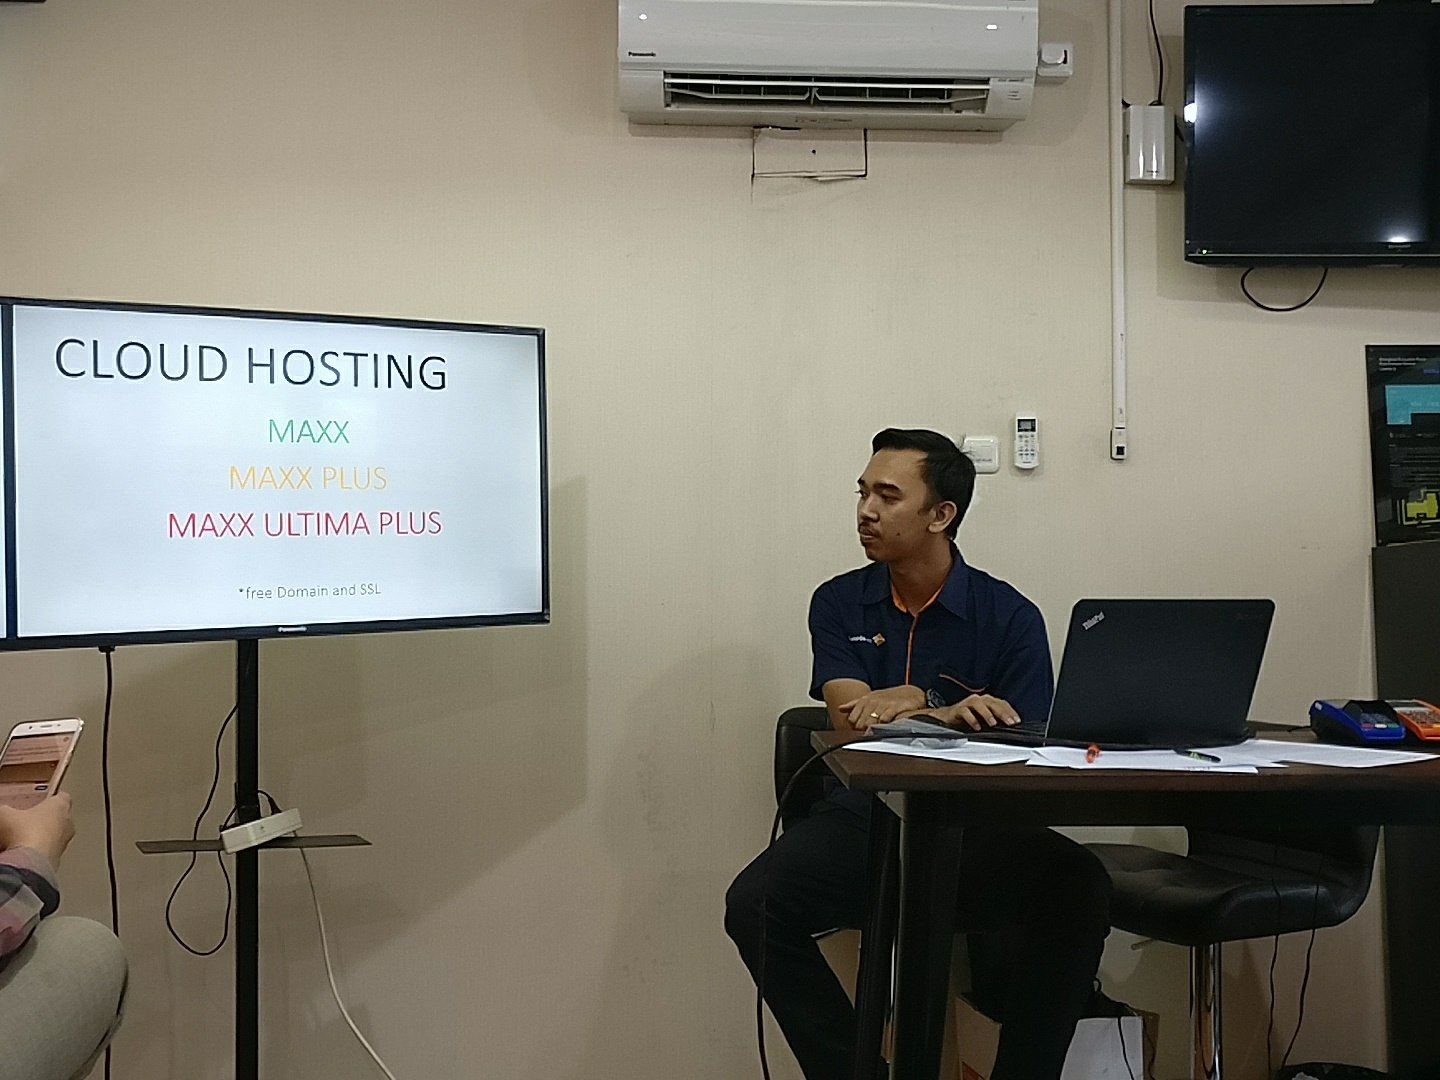 Product Knowledge: Maxx Hosting